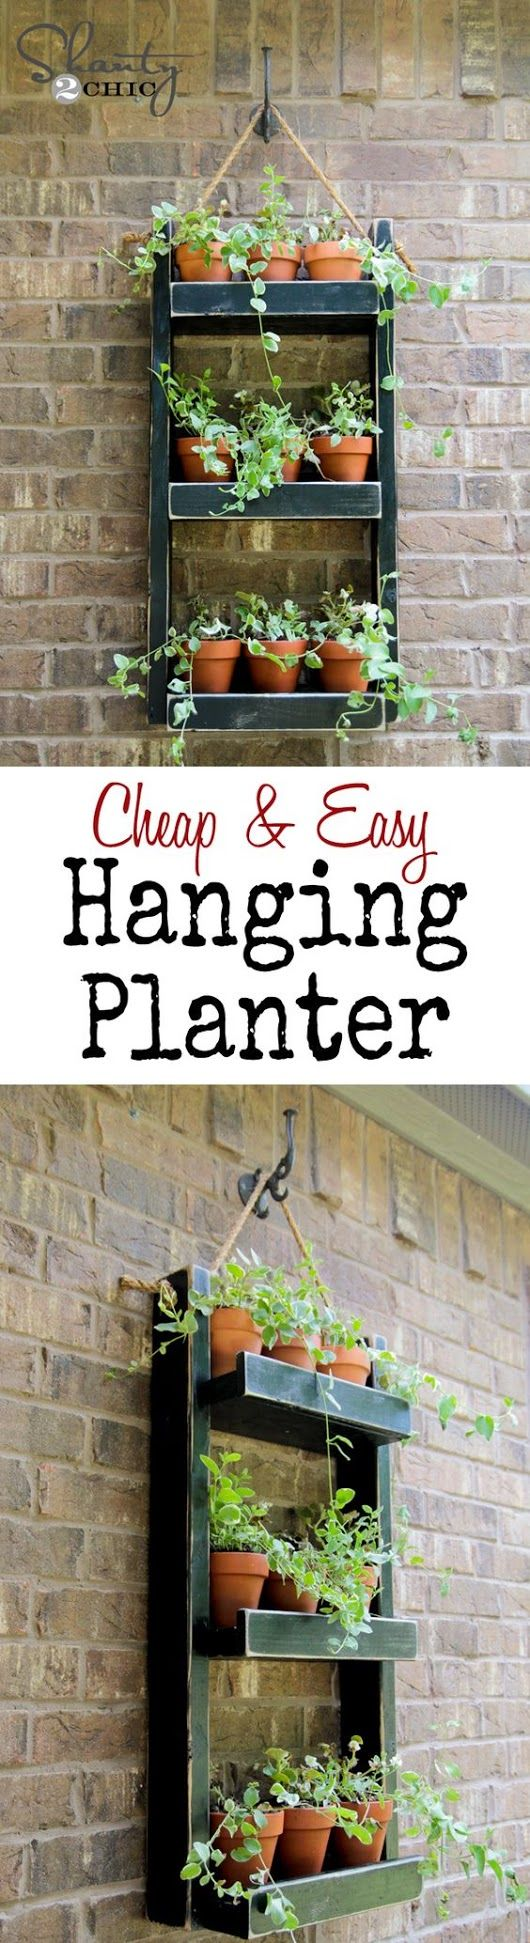 cheap u0026 easy hanging planter slagle wood designs must make one